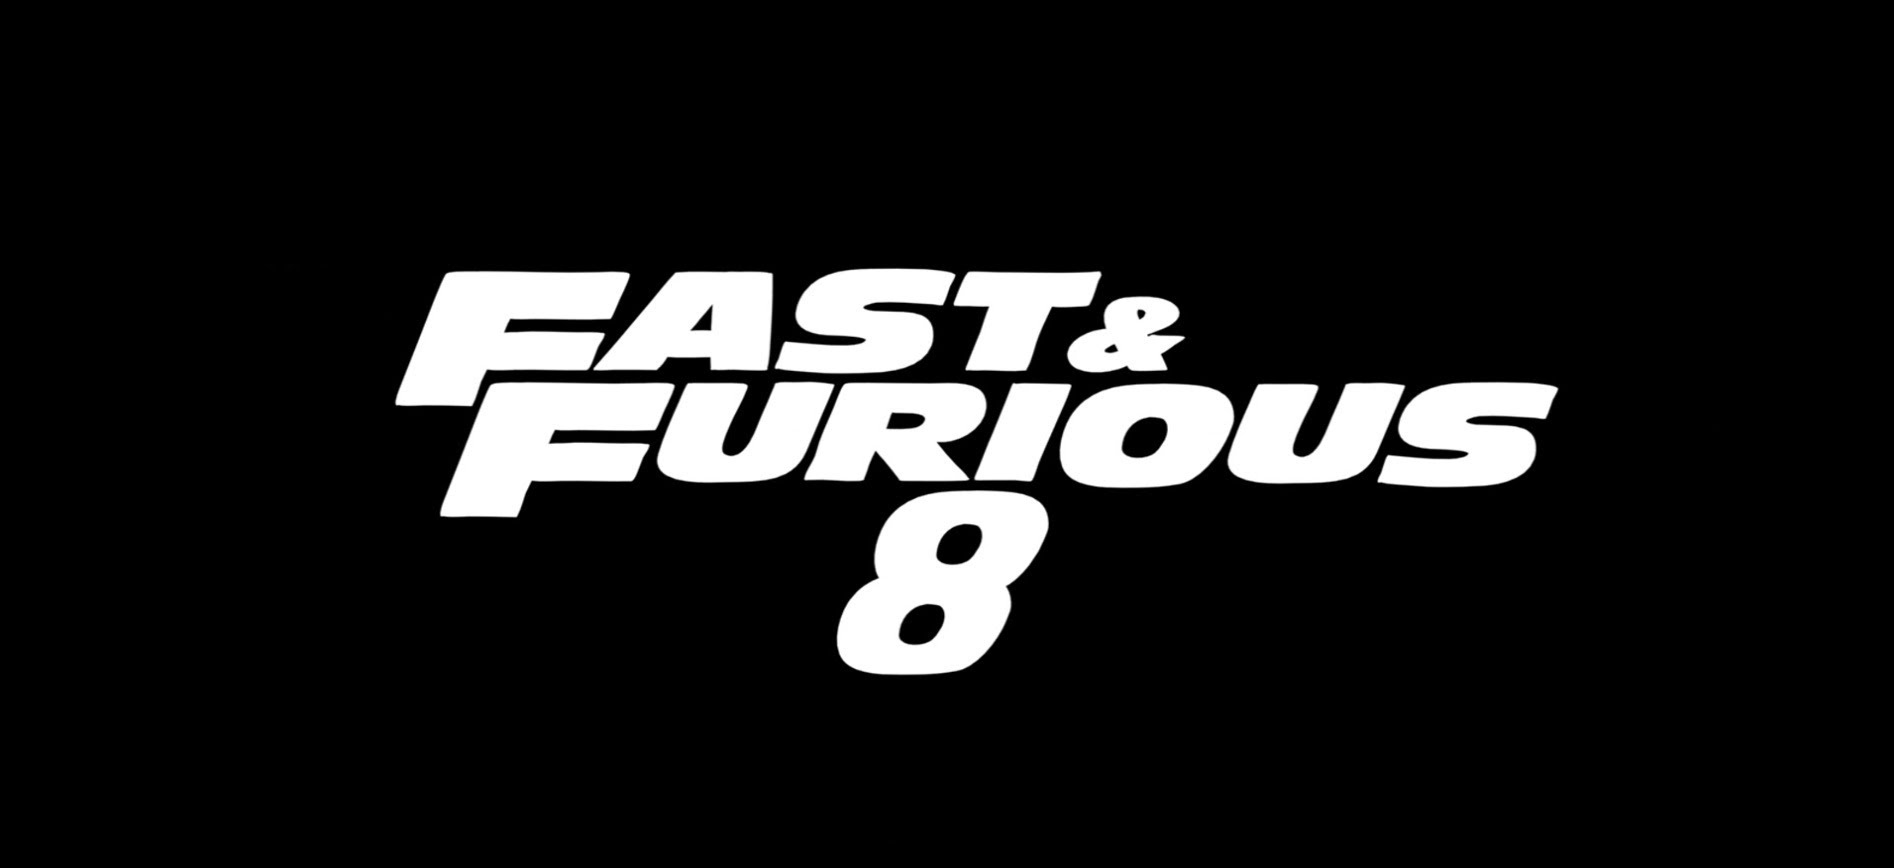 Check Out The Latest FAST AND THE FURIOUS 8 Trailer! AMAZING!!!